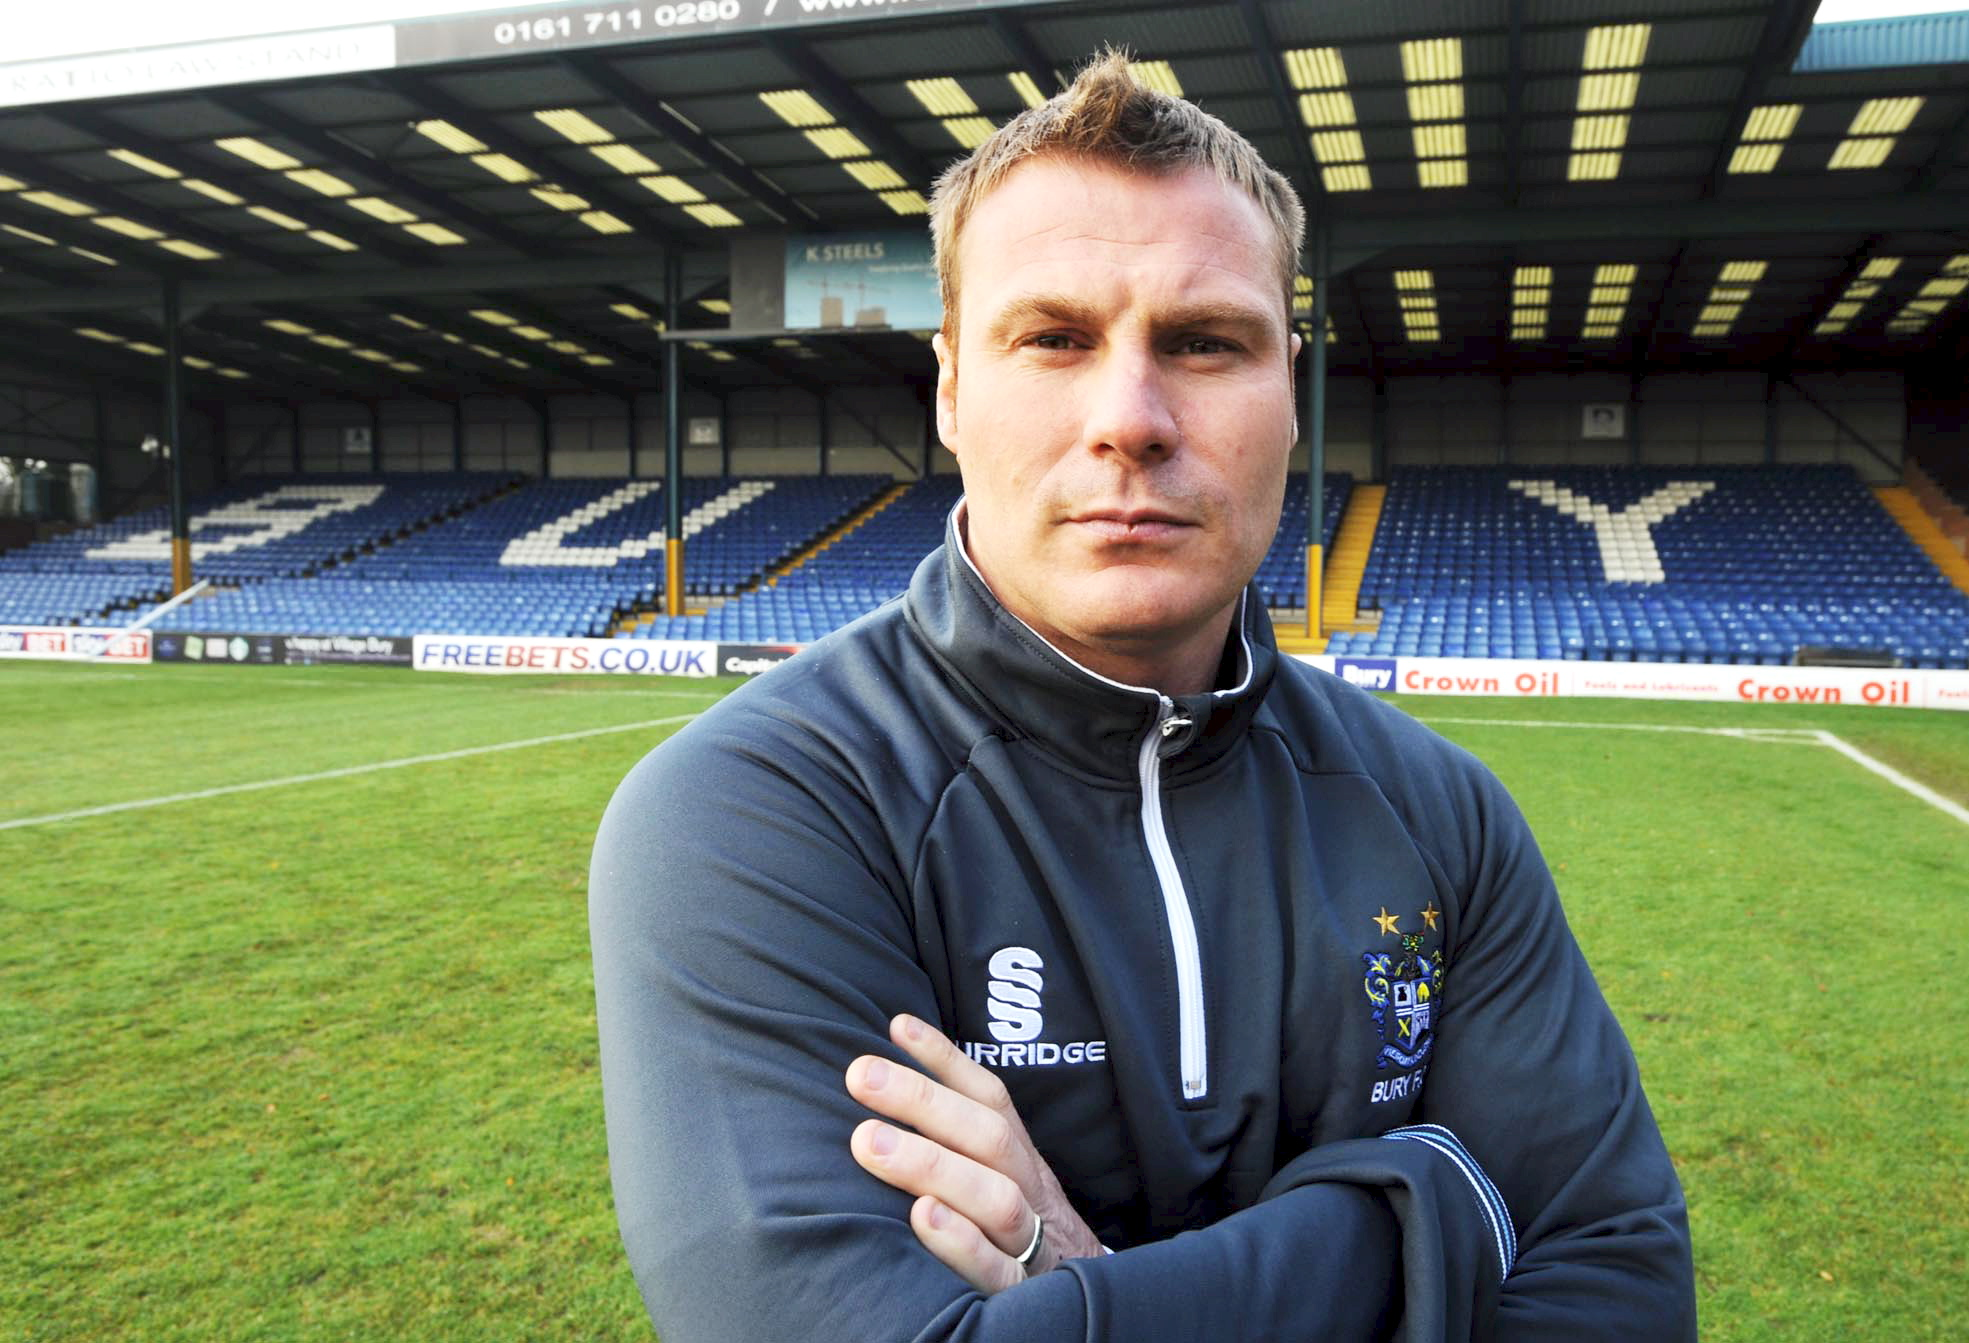 PREVIEW: Bury v Rochdale - Battle of the Bolton bosses